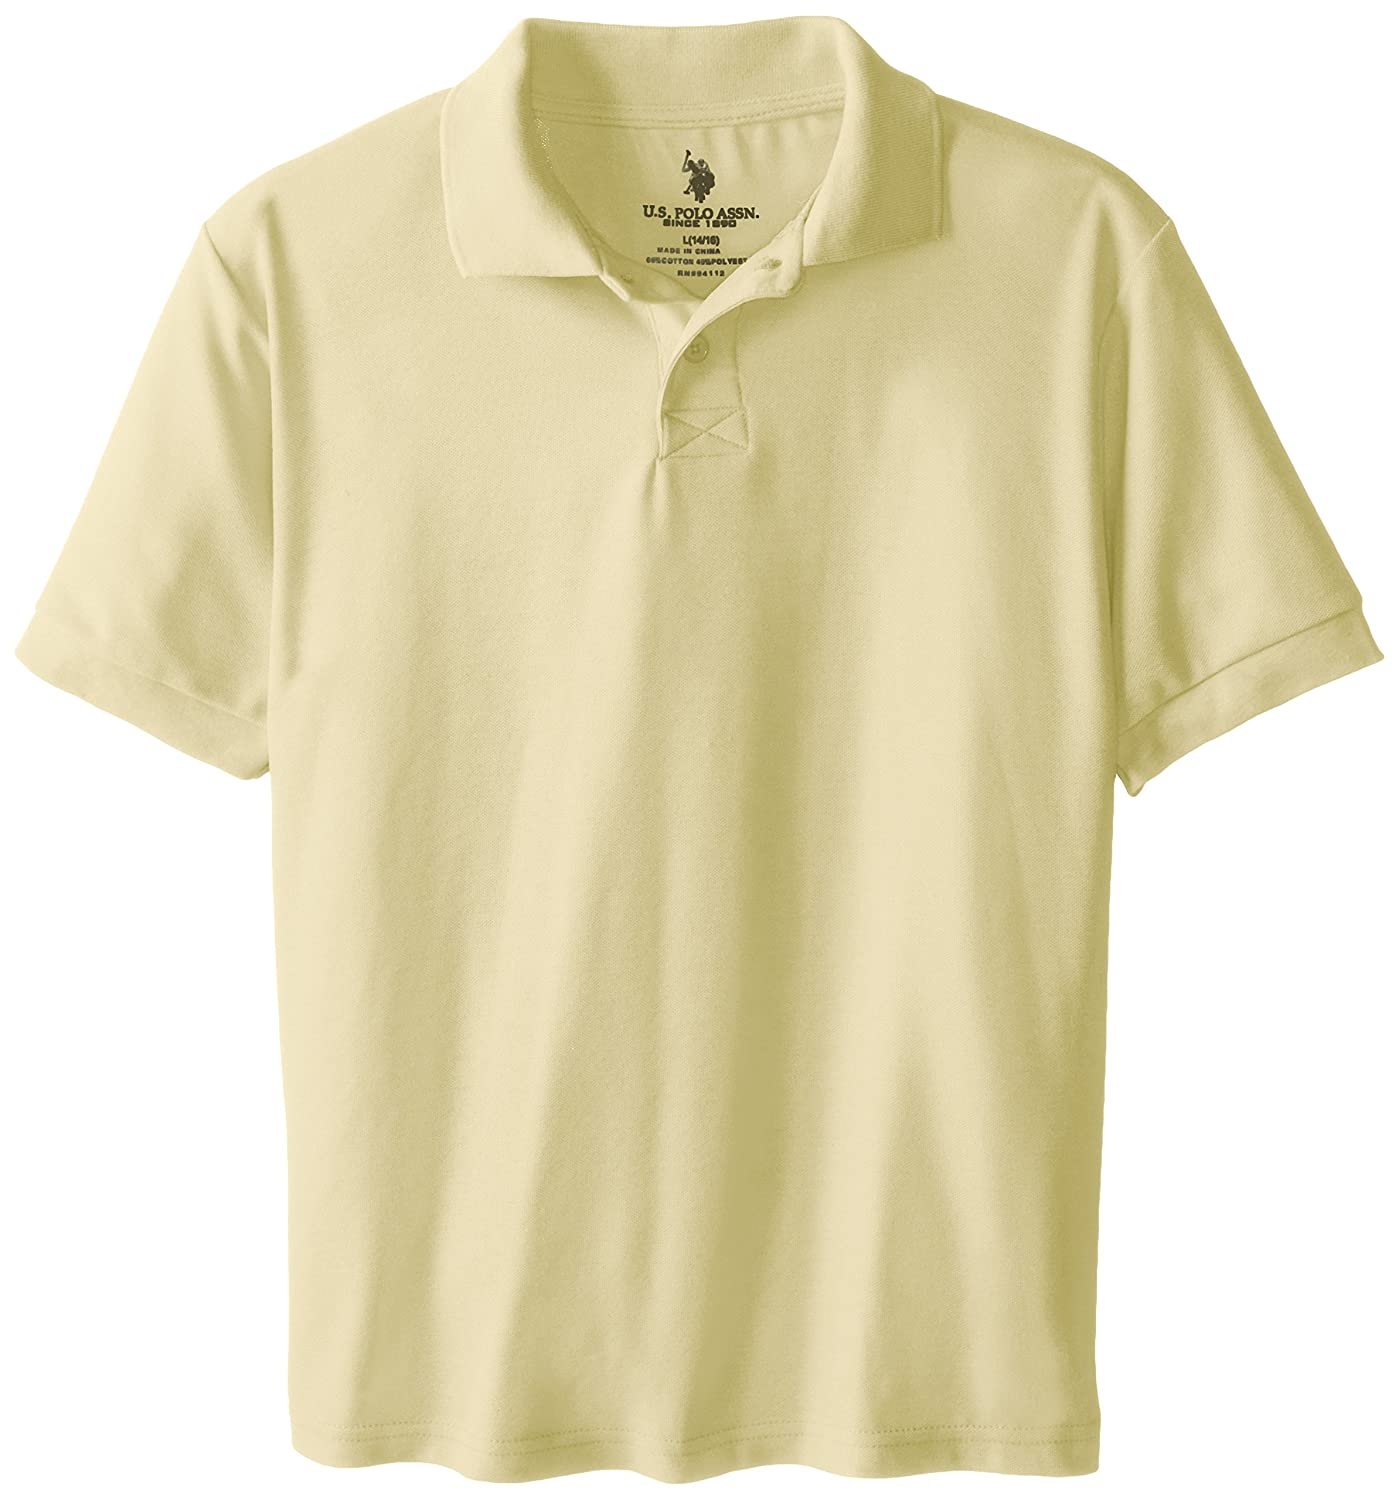 U.S. Polo Association Big Boys' School Uniform Short-Sleeve Pique Polo Shirt T76617